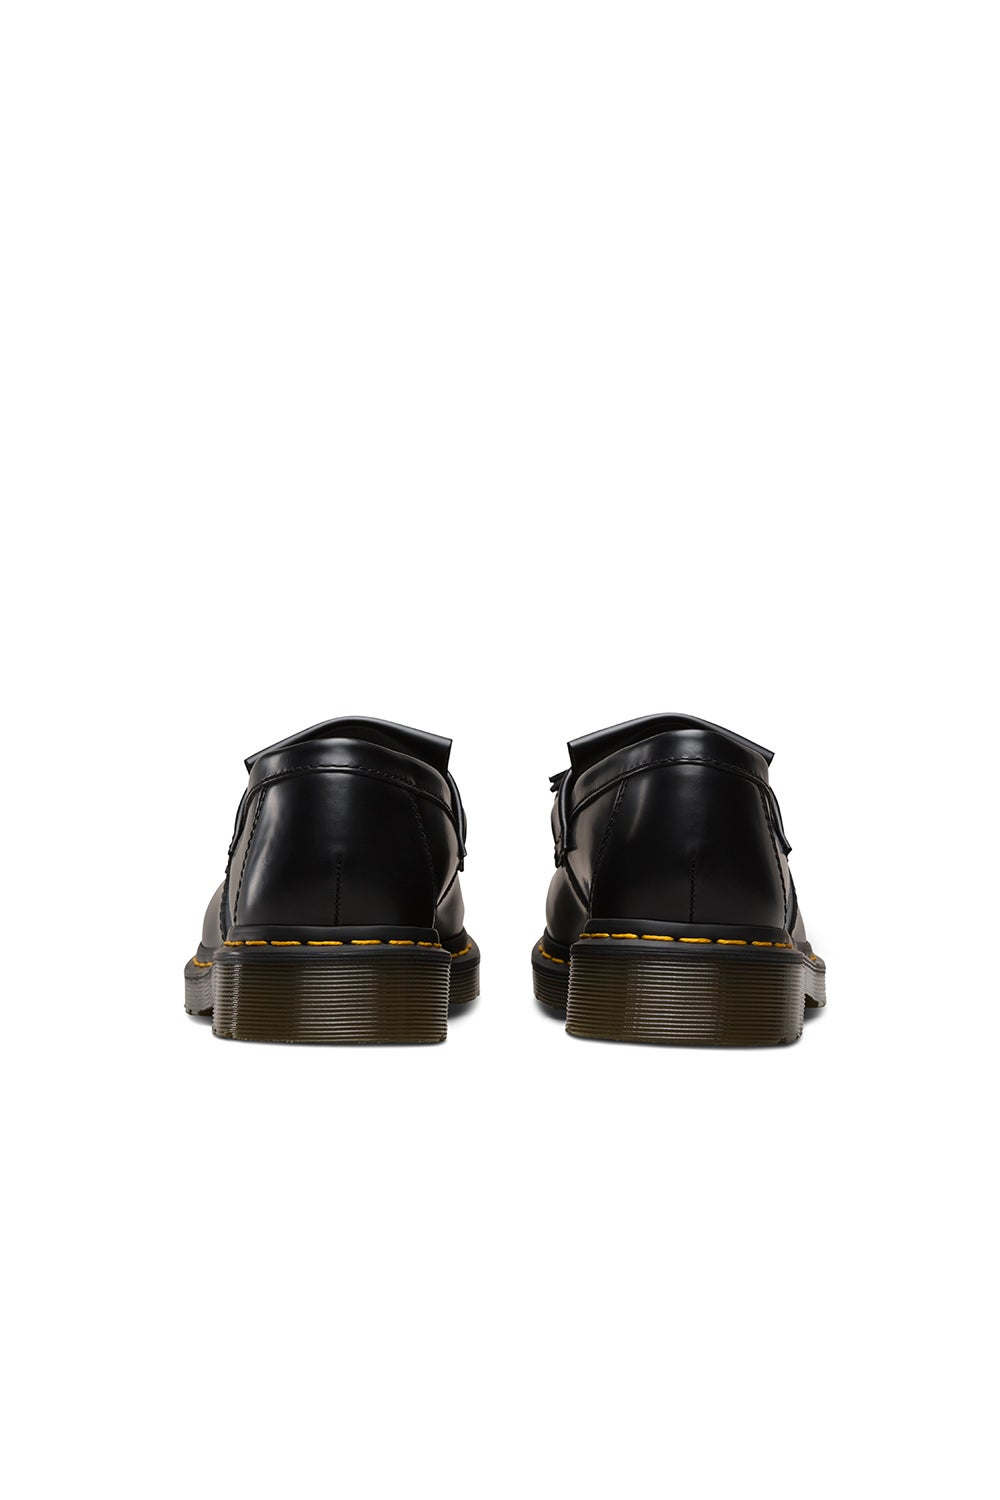 Dr. Martens Adrian Loafer Black